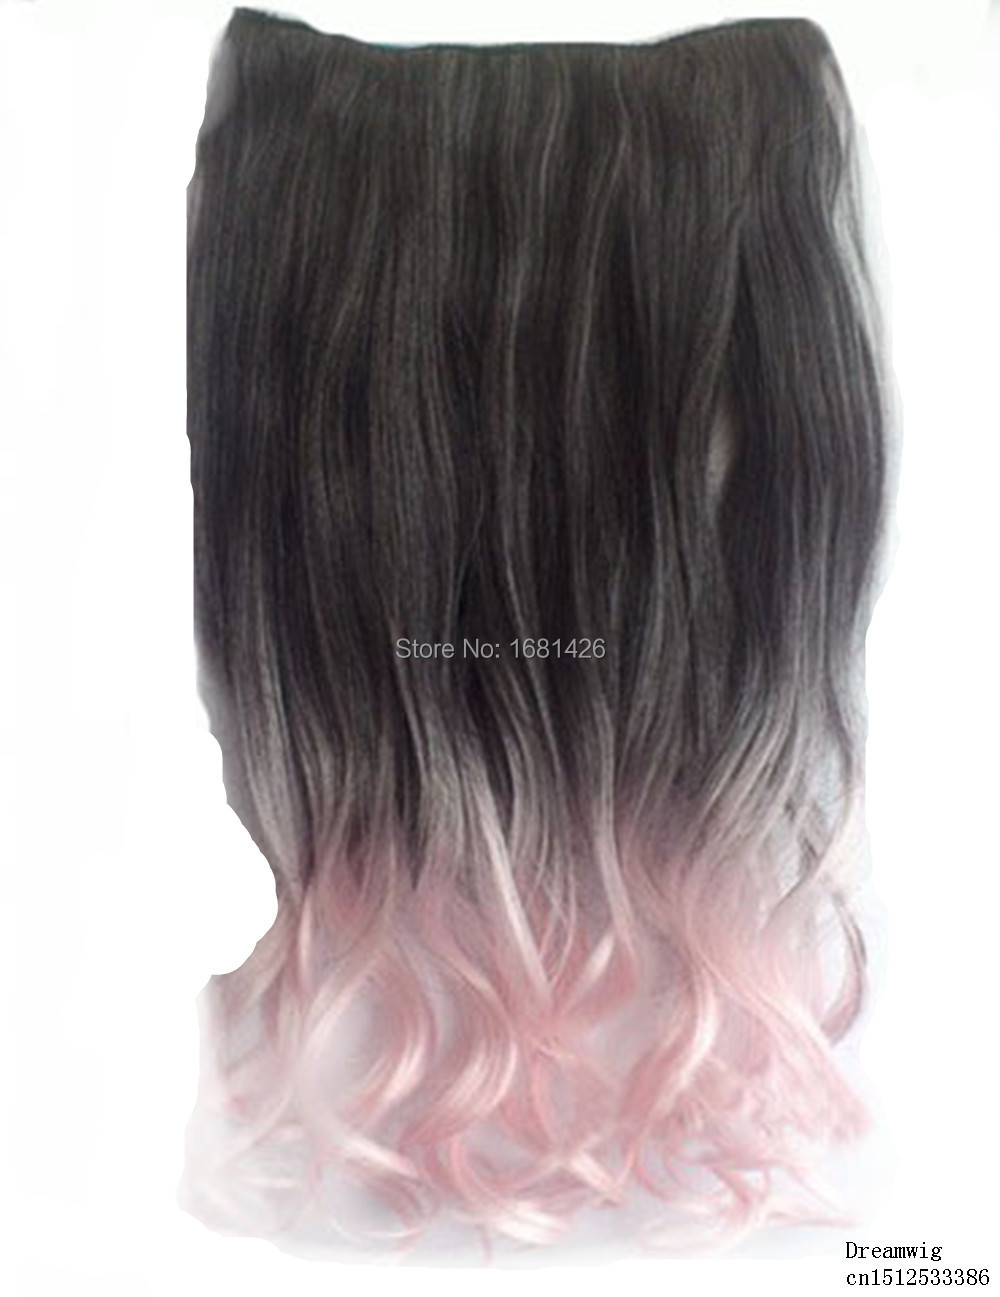 Dreamwig 24 Inch Black to Cherry Pink Color Ombre Curly Curl Wavy Full Head Clip in Hair Extensions(China (Mainland))